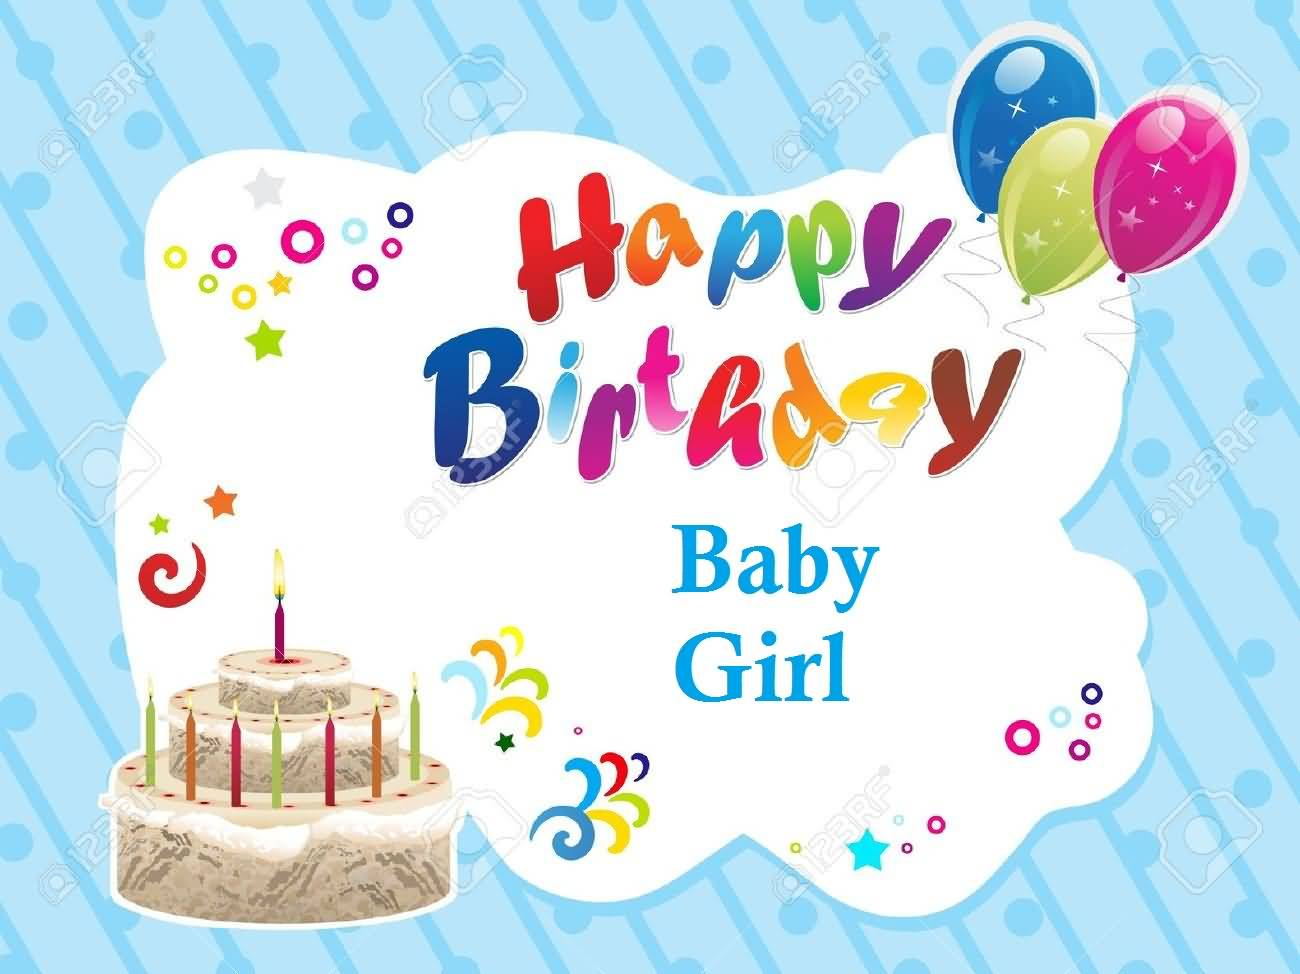 33 Cute Baby Girl Birthday Wishes Picture Image Happy Birthday Wishes For Baby